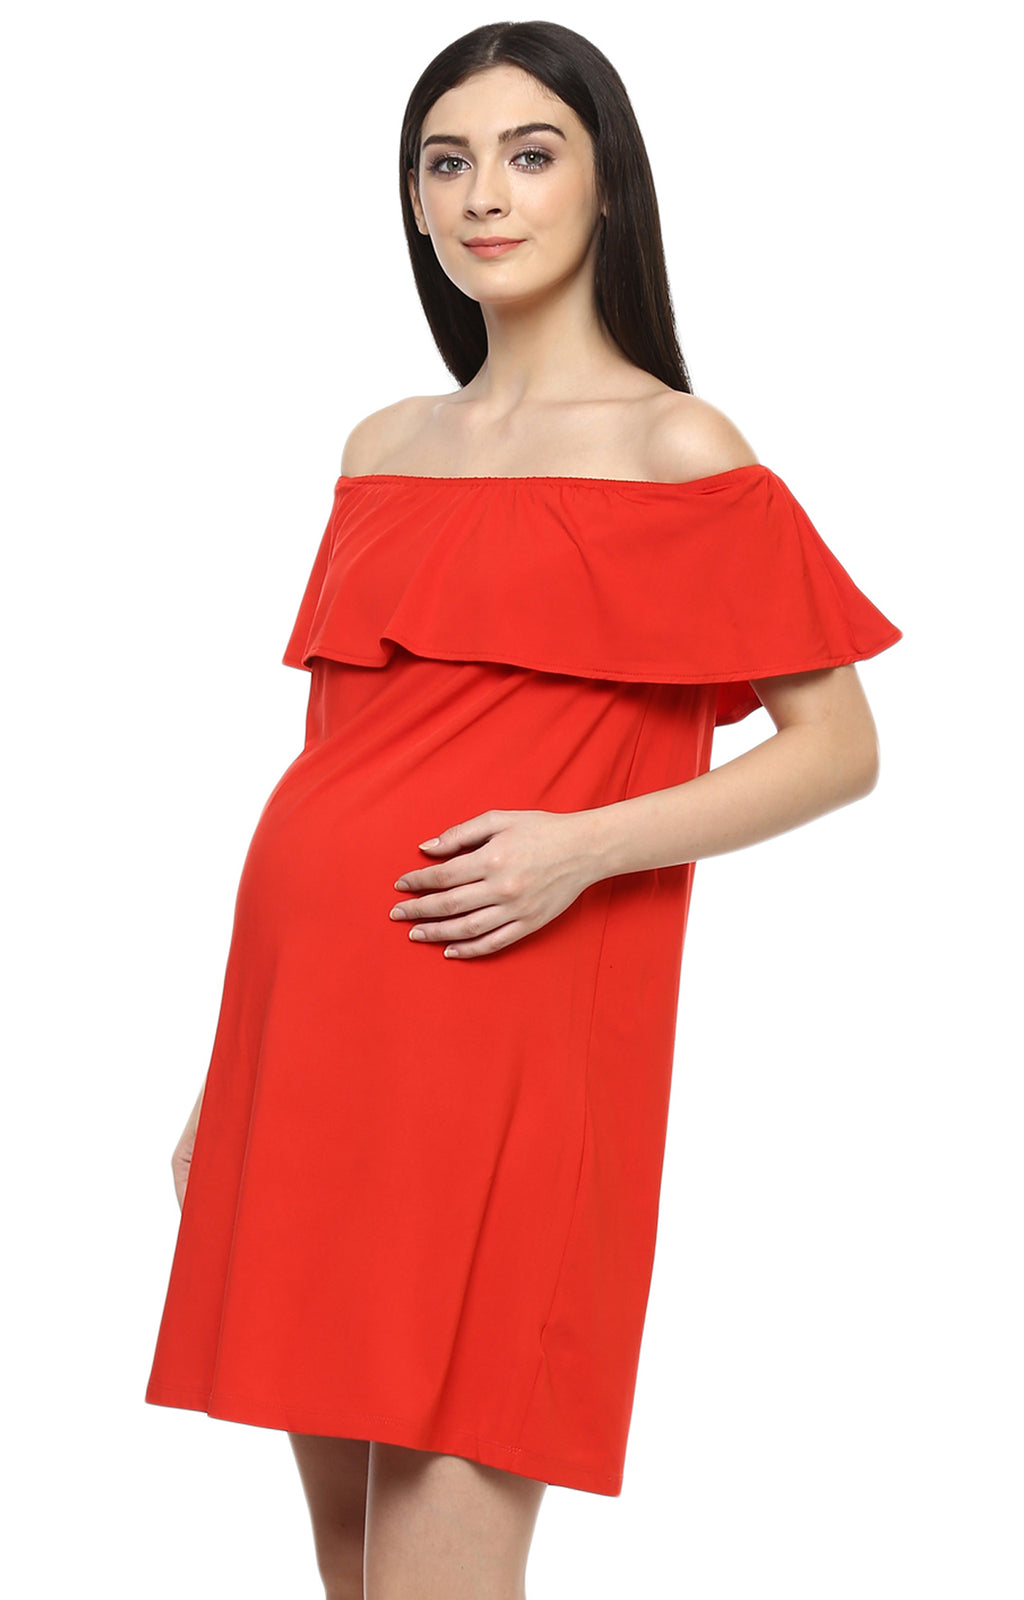 Off Shoulder Dress - momsoon maternity fashion wear